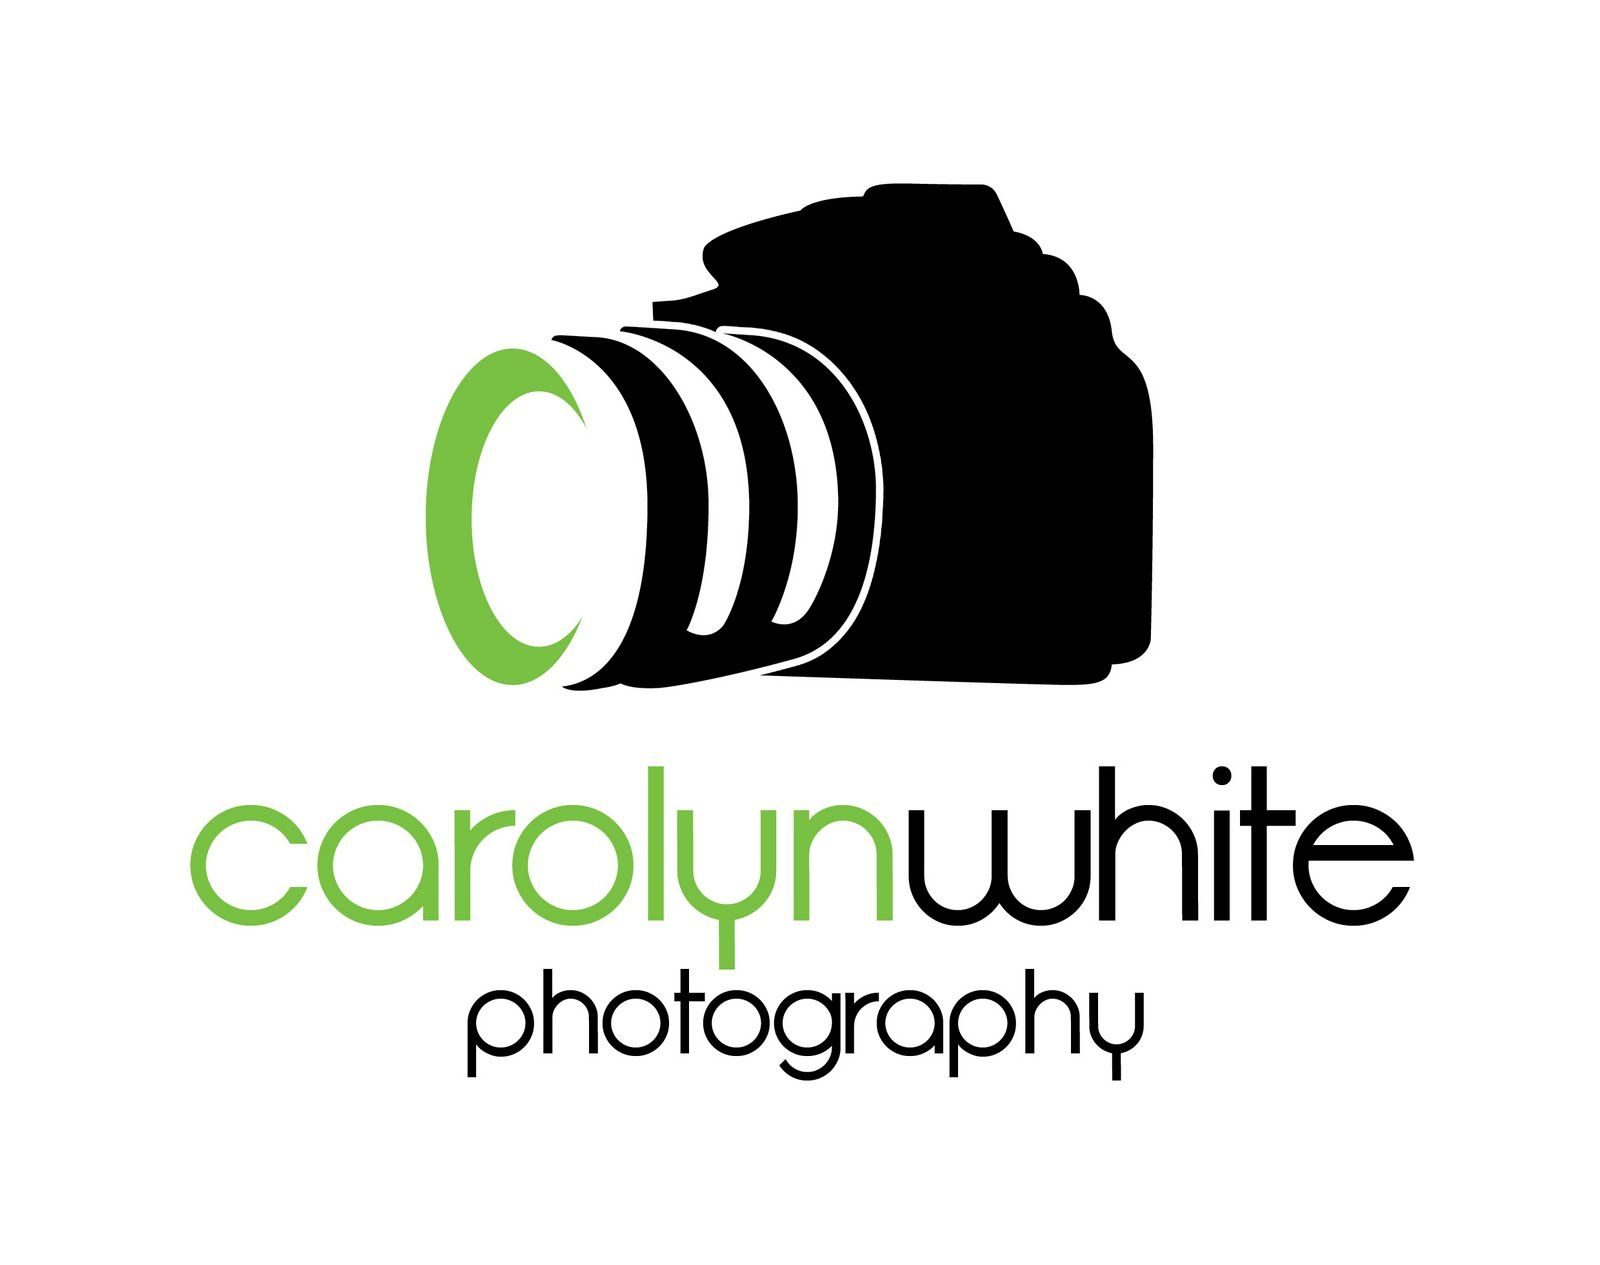 Carolyn White Photography Photography Logos Photographers Logo Design Photographer Logo